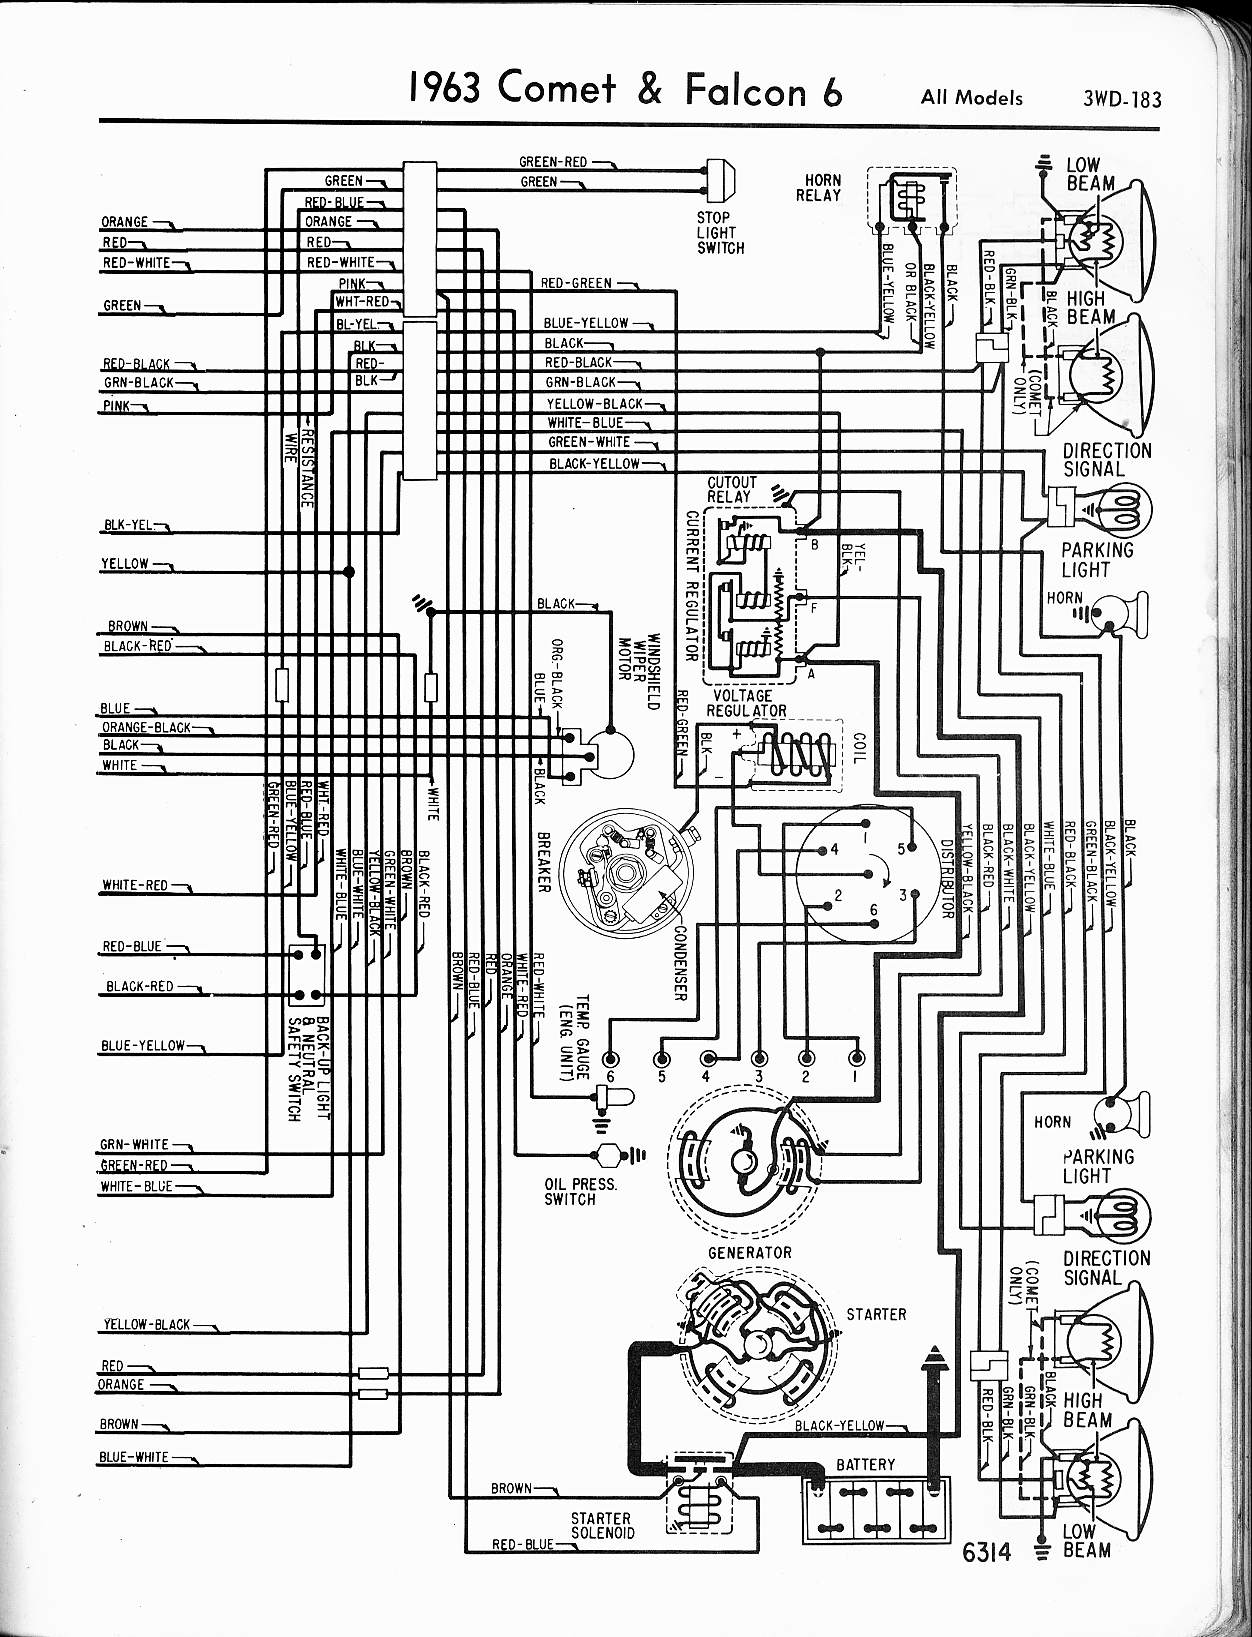 63 falcon wiring diagram | FordForumsOnline.com on ford ignition module schematic, 1989 ford f250 ignition wiring diagram, 1976 ford ignition wiring diagram, ford electrical wiring diagrams, 1994 ford bronco ignition wiring diagram, ford cop ignition wiring diagrams, ford wiring harness diagrams, 1980 ford ignition wiring diagram, ford falcon wiring-diagram, ignition coil wiring diagram, ford 302 ignition wiring diagram, msd ignition wiring diagram, ford tractor ignition switch wiring, ford ranger 2.9 wiring-diagram, ford ignition solenoid, basic ignition system diagram, 1979 ford ignition wiring diagram, 1968 ford f100 ignition wiring diagram, 1974 ford ignition wiring diagram, ford ignition wiring diagram fuel,